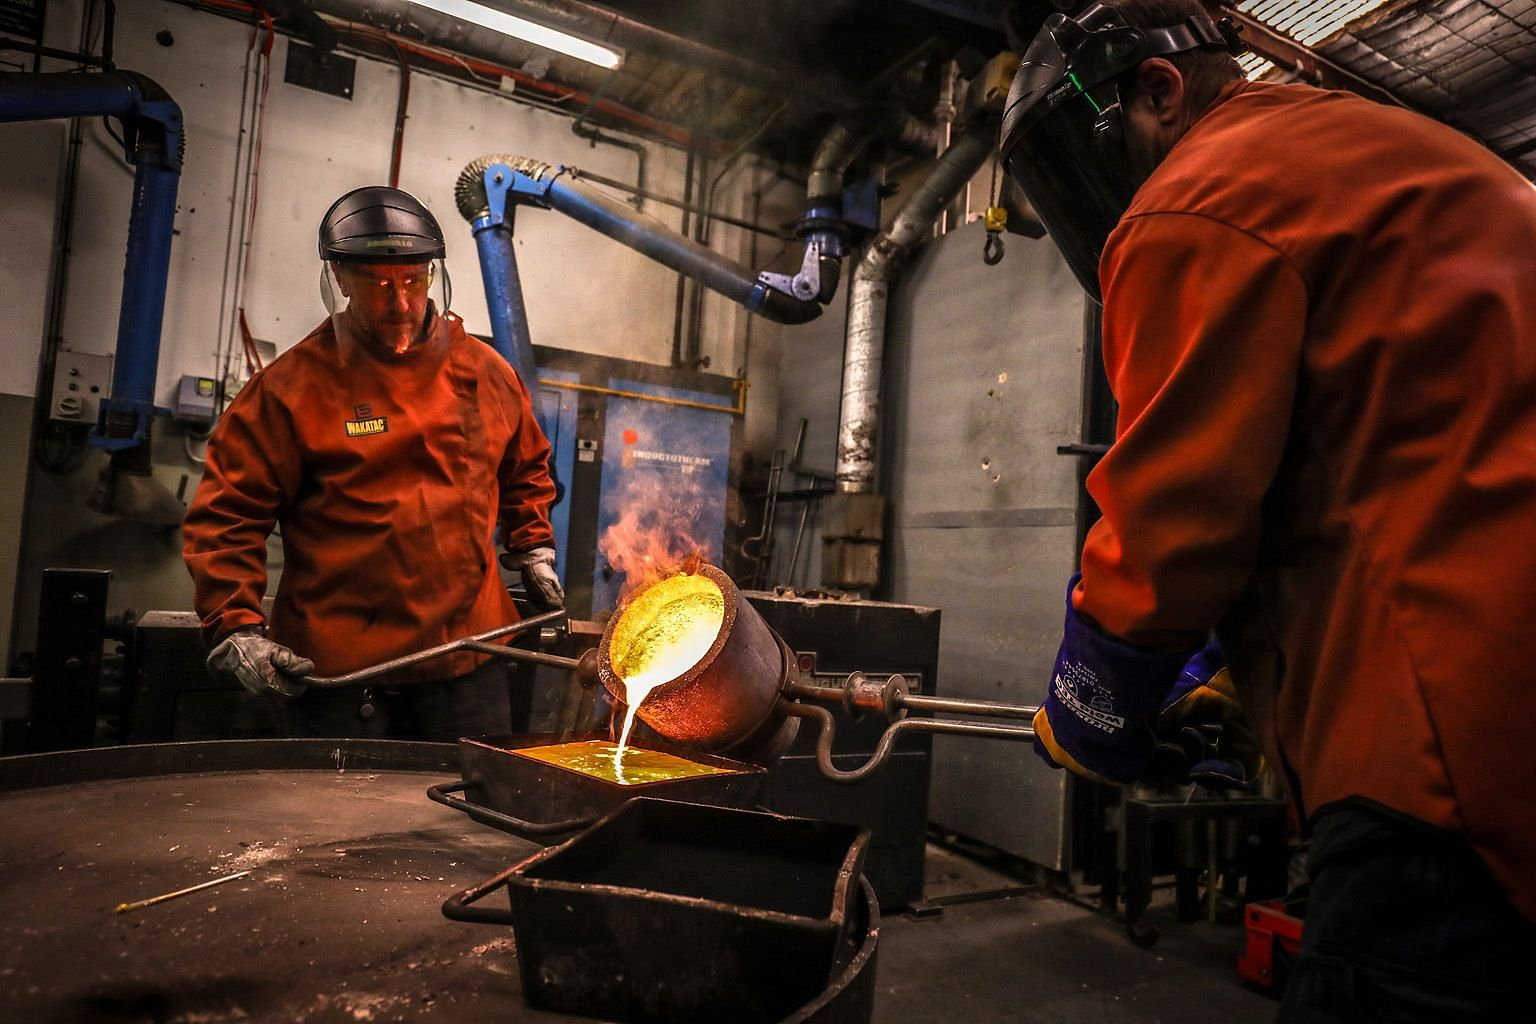 Workers pouring gold into a mould at a smelter in Sydney. When a recession hits and central banks go on a rate-cut overdrive, a large part of the usual low-risk bond market becomes worthless in terms of yield. Gold becomes the preferred alternative i